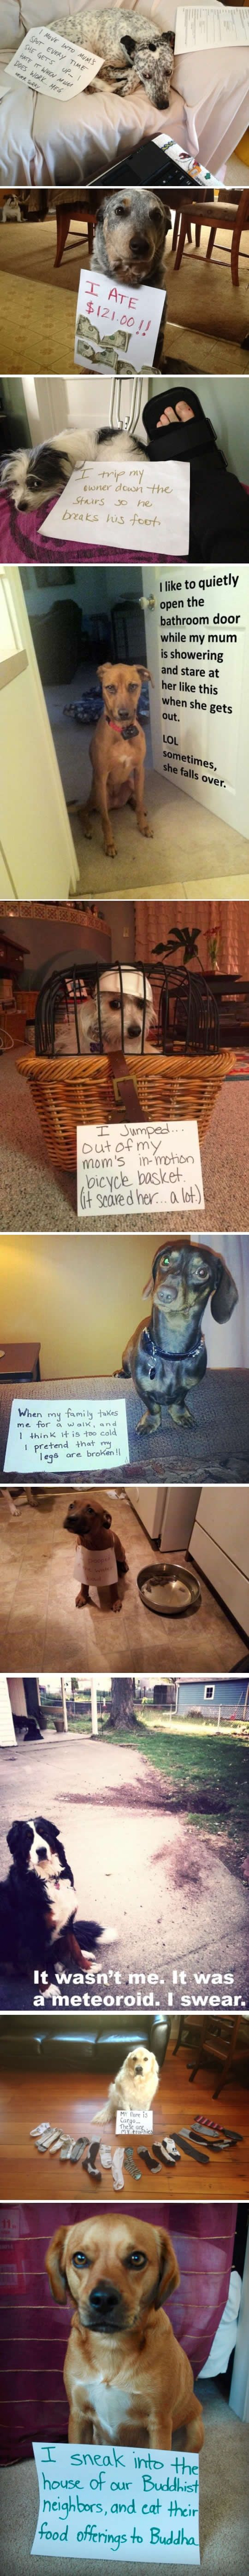 Pet shaming. Some of these are absolutely hysterical!